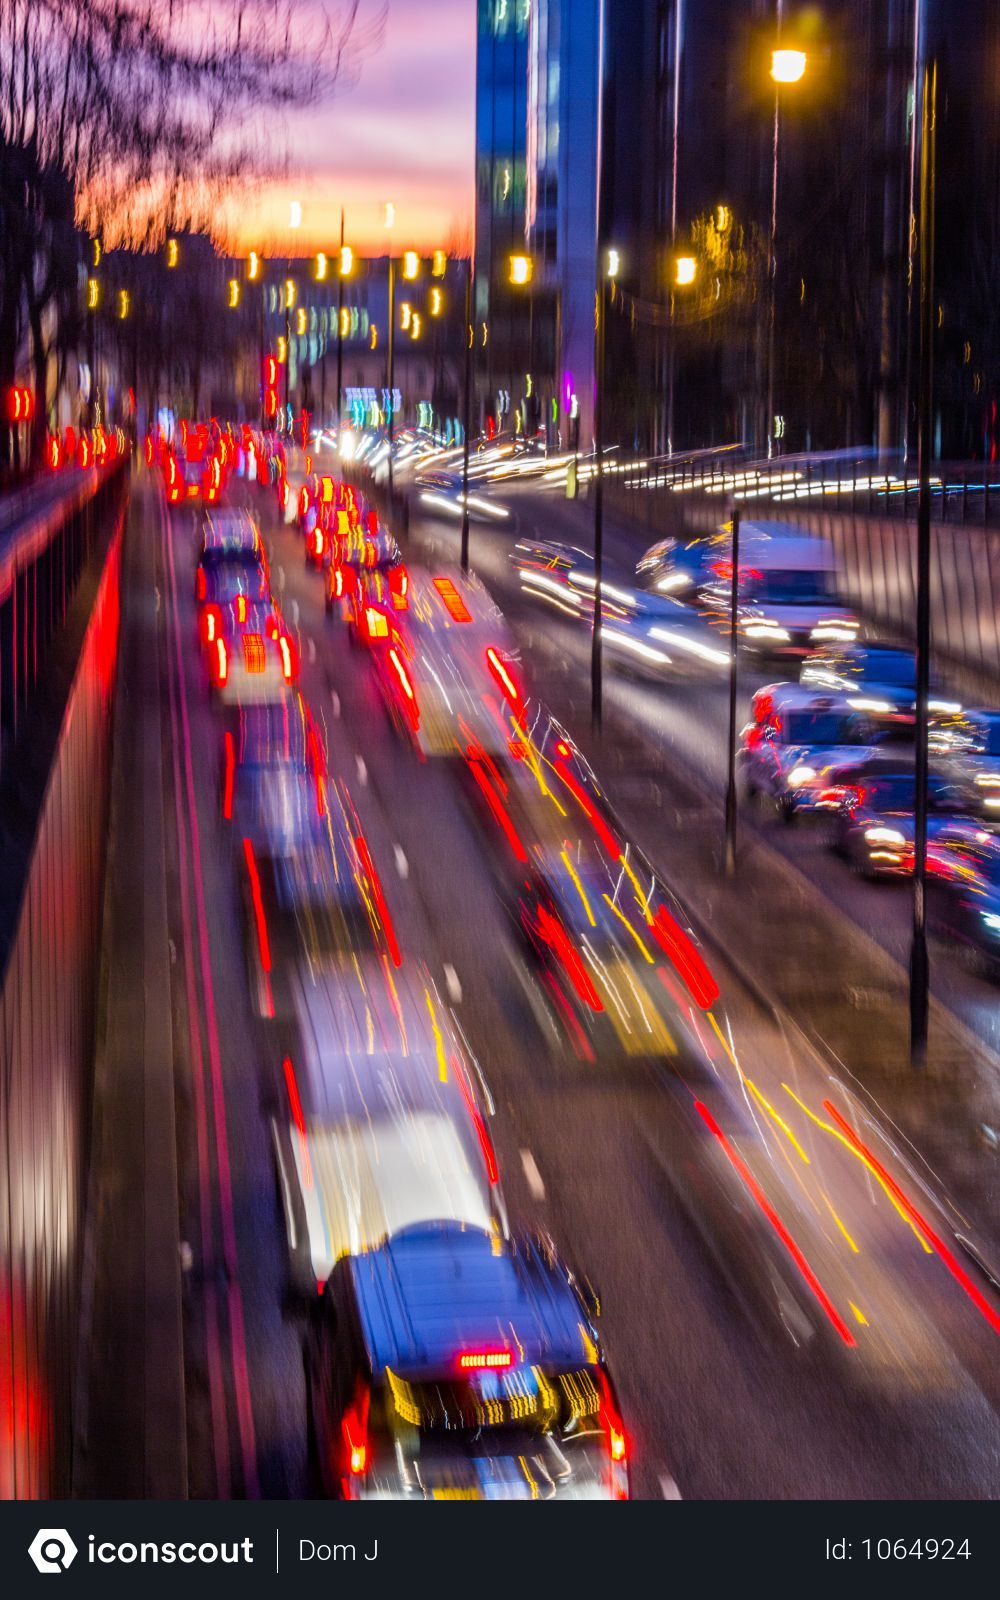 Free Speed Light Photography Of Cars In Traffic Photo Time Photography Light Photography Time Lapse Photography